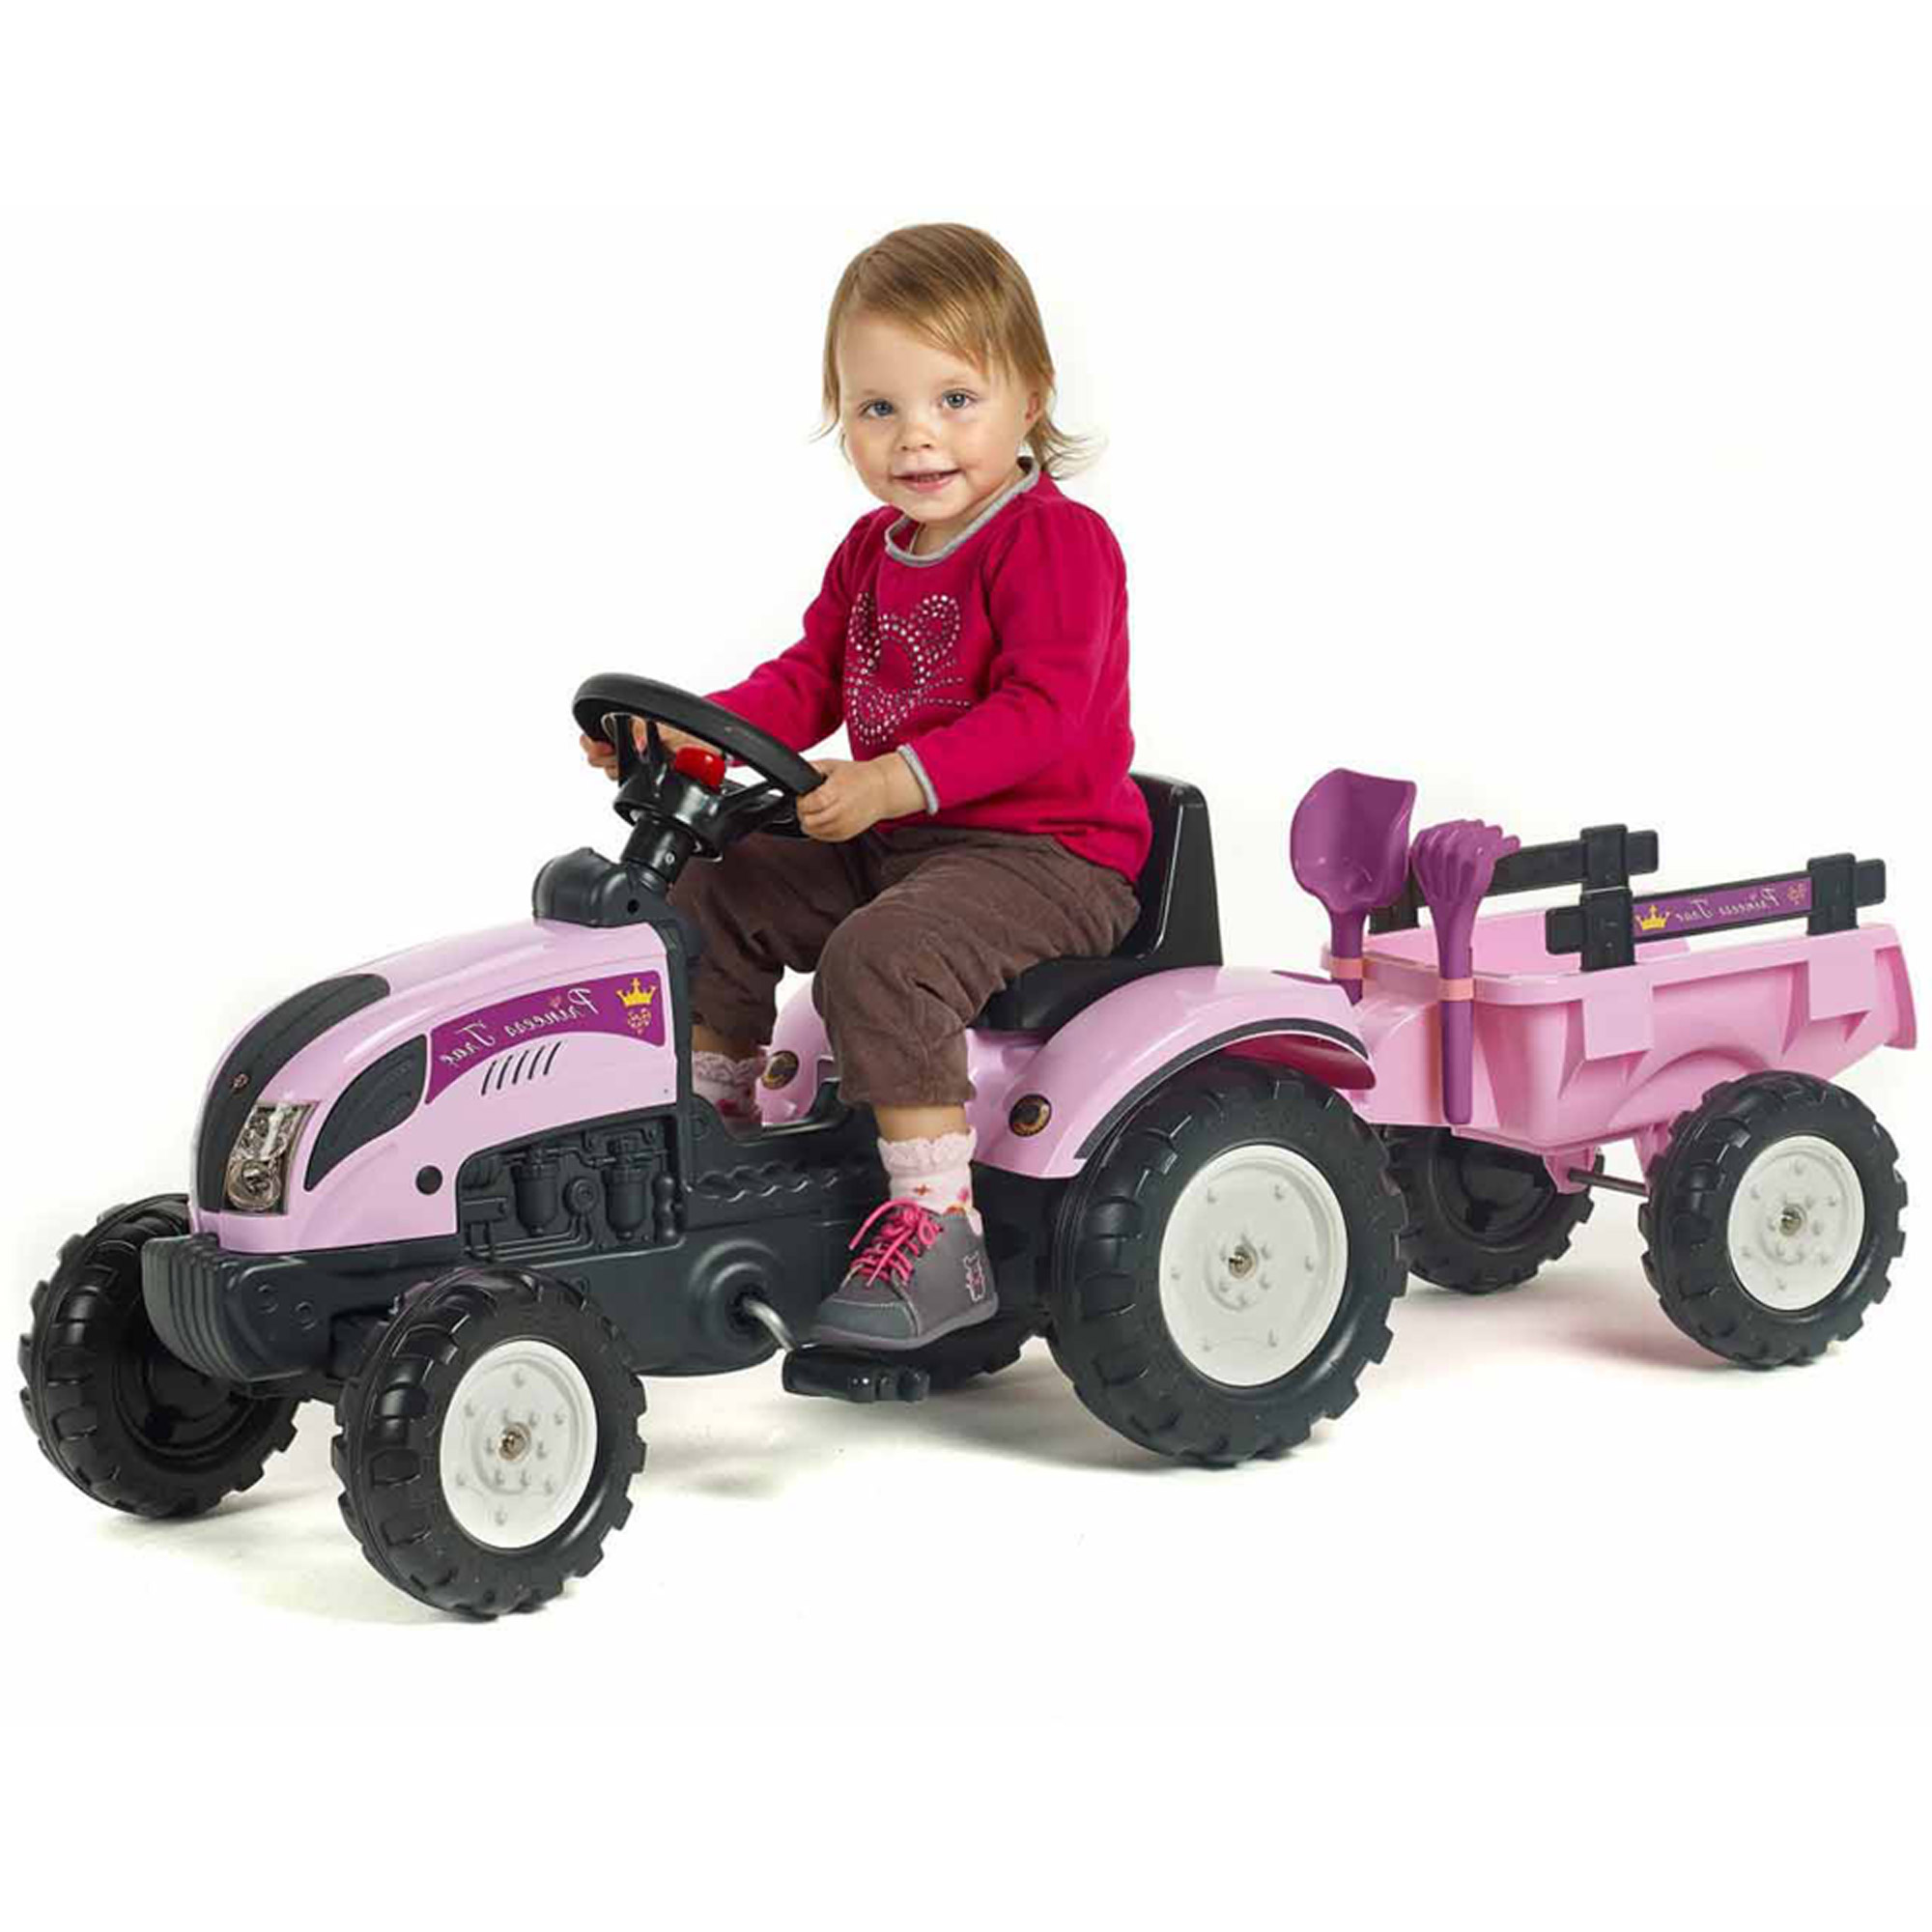 Falk Ranch Trac with Trailer, Pink